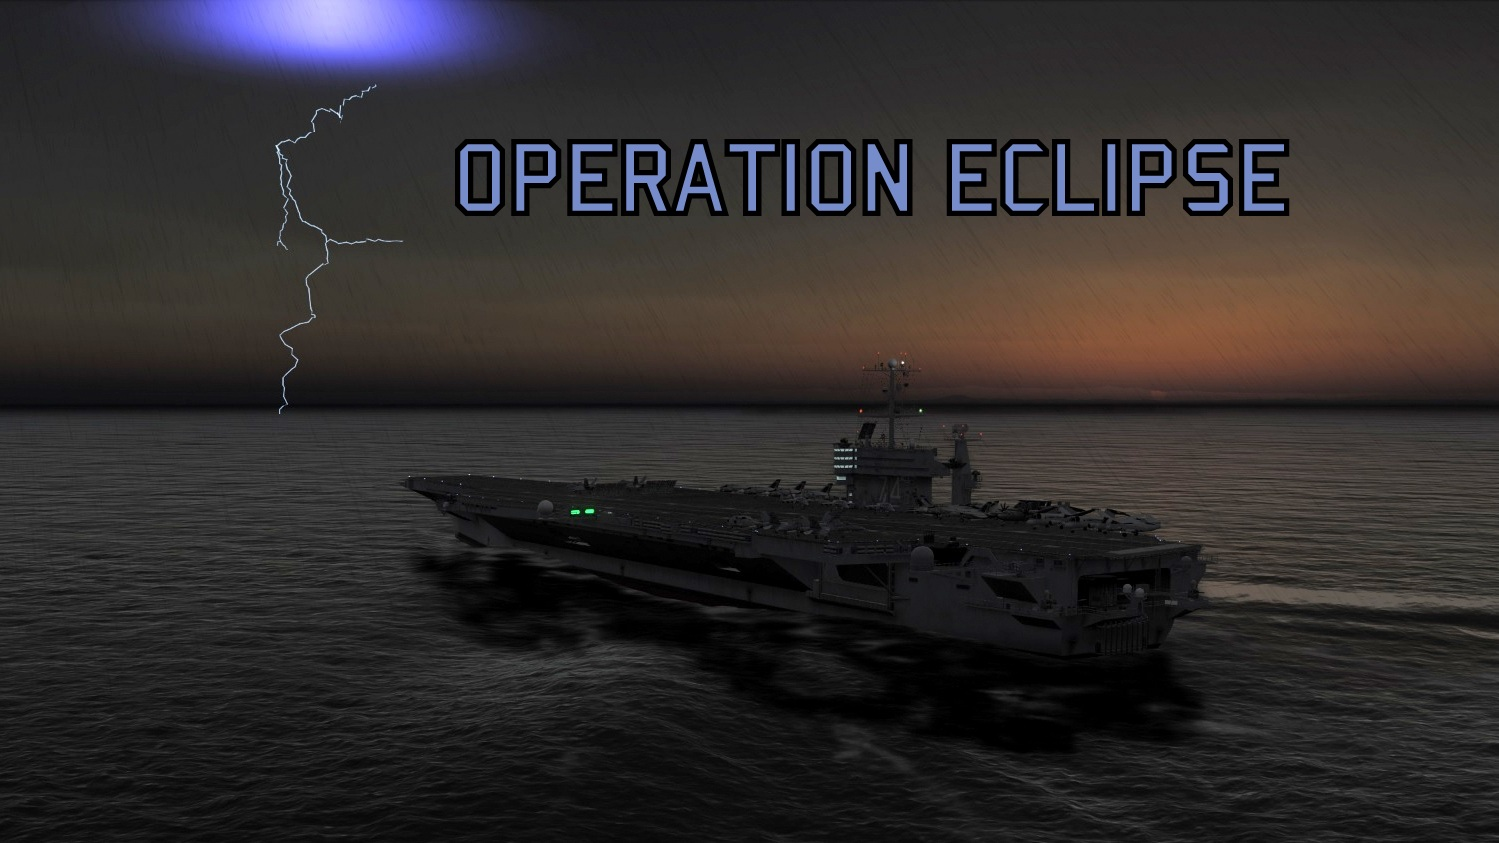 F-14B: Operation Eclipse